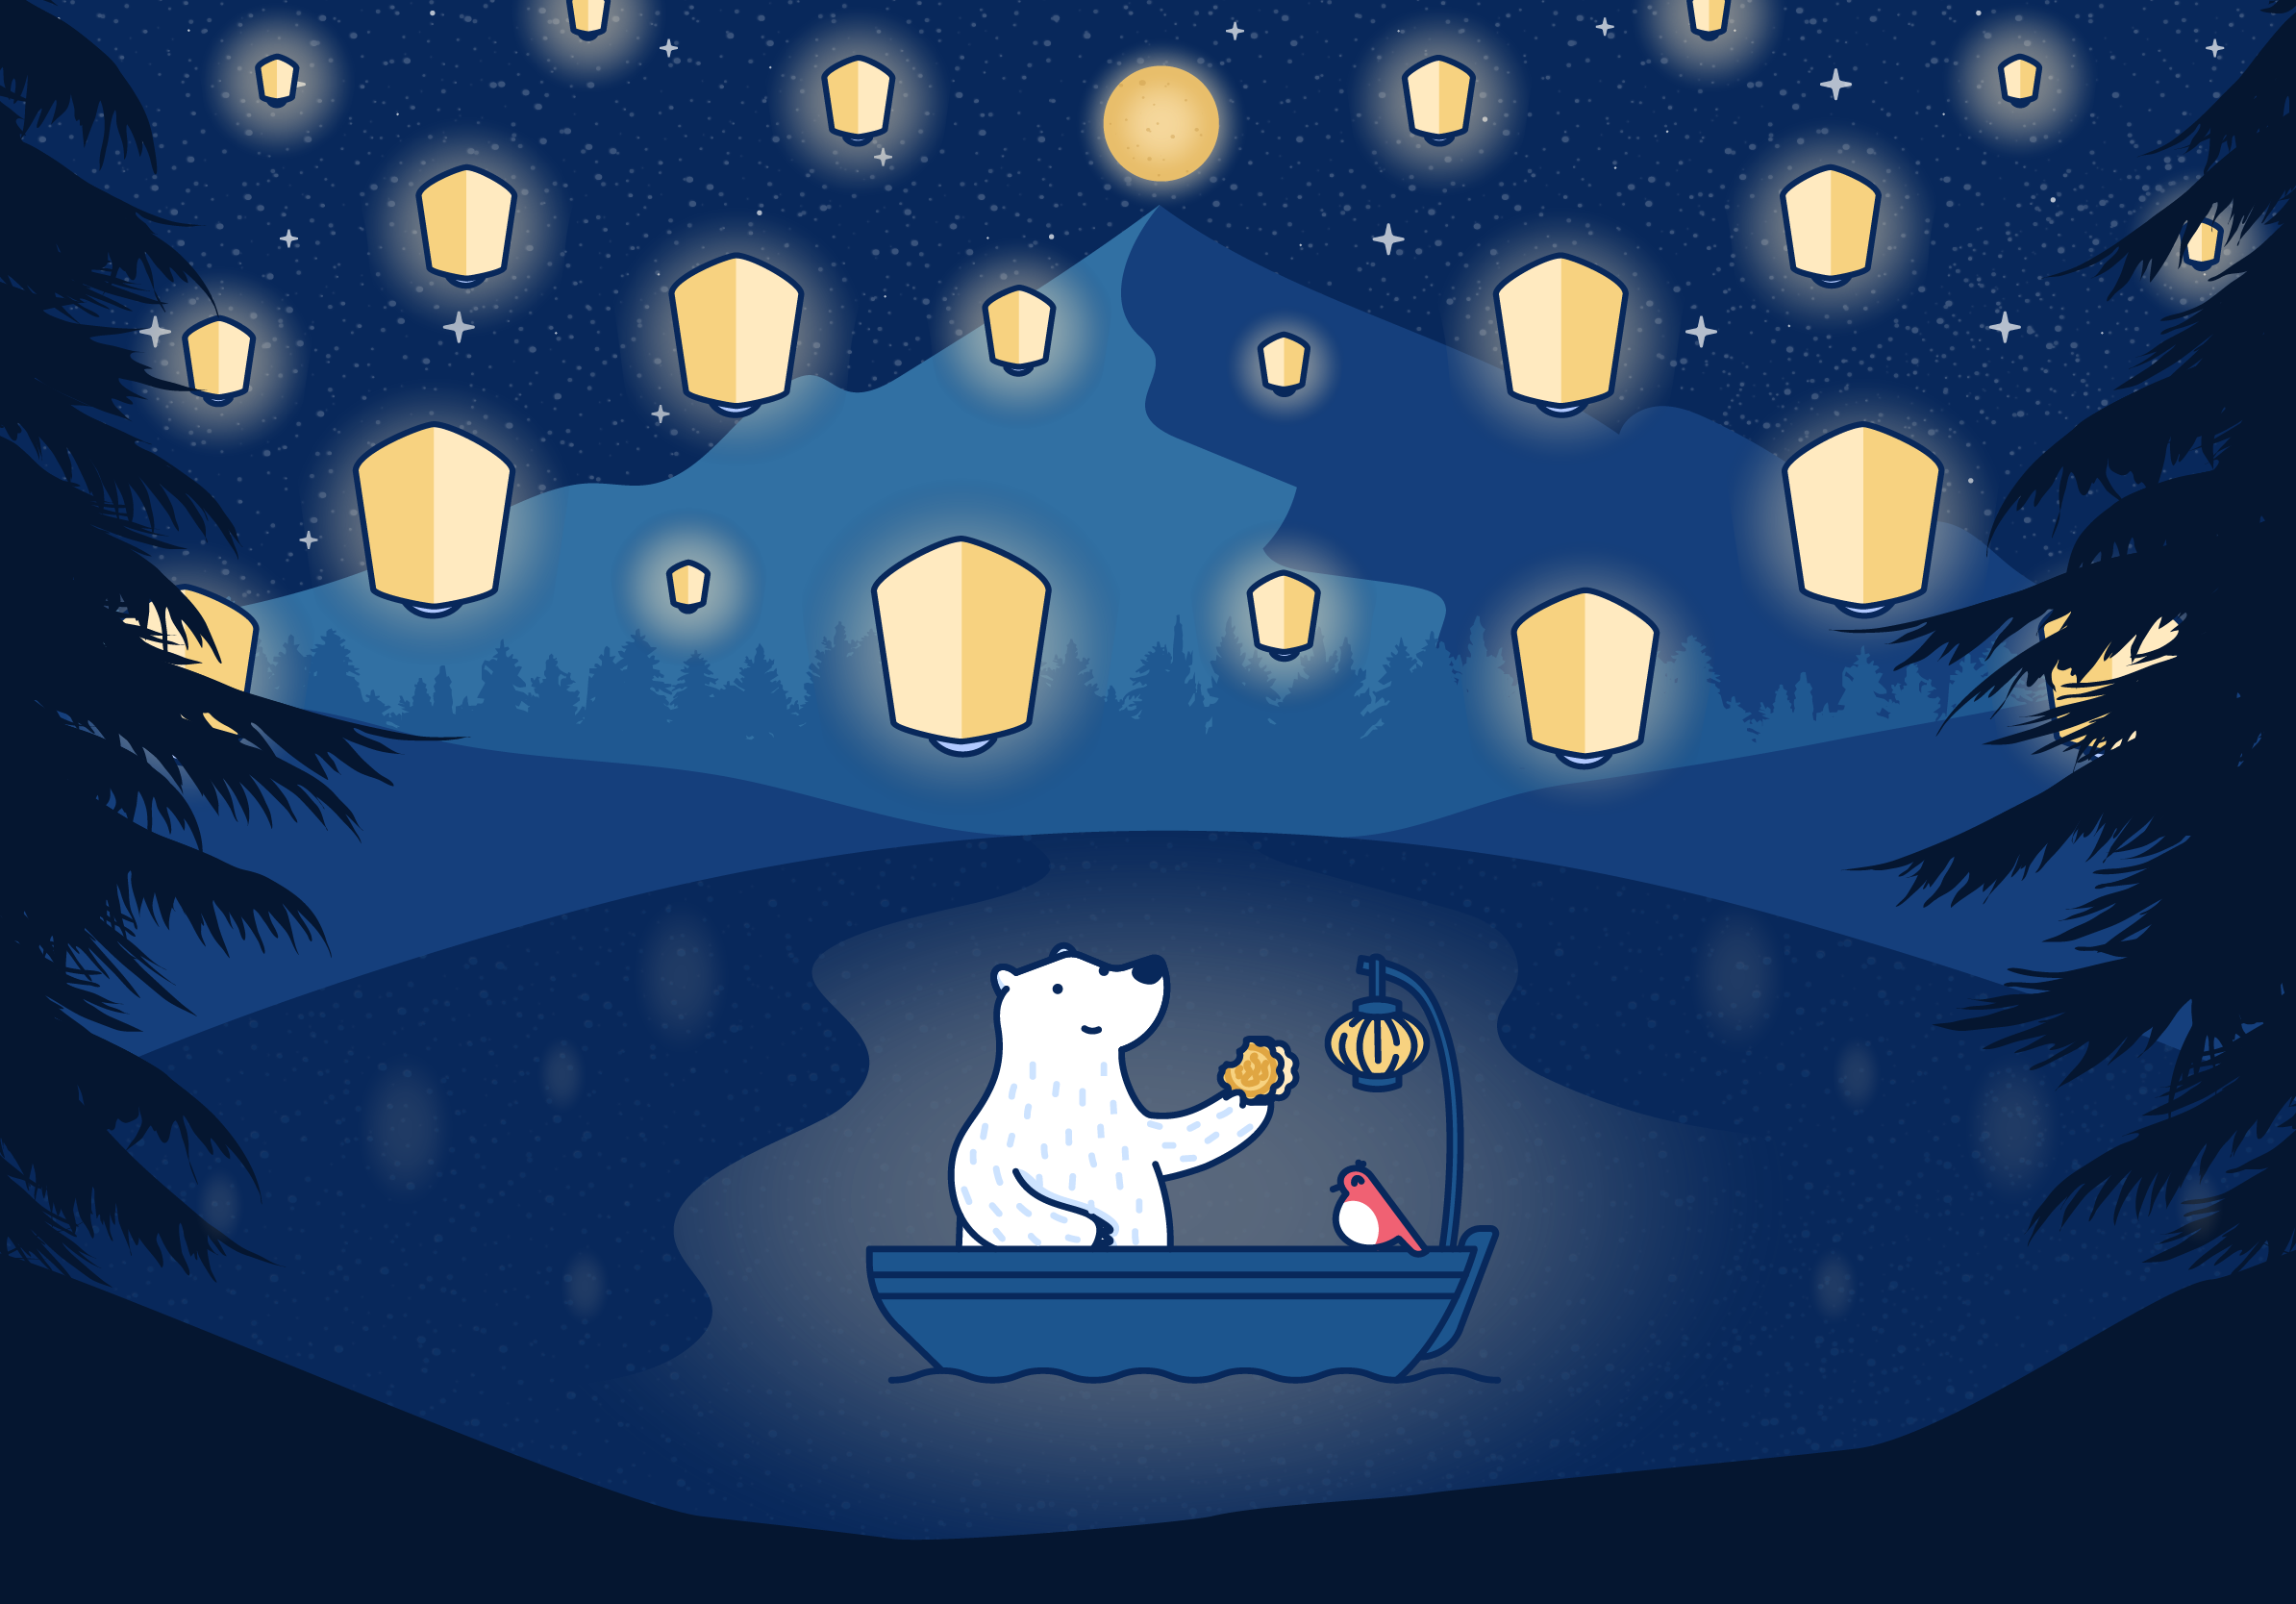 Bear Themed Wallpapers For Your Iphone Ipad And Mac Bear App Join us in the forum. bear themed wallpapers for your iphone